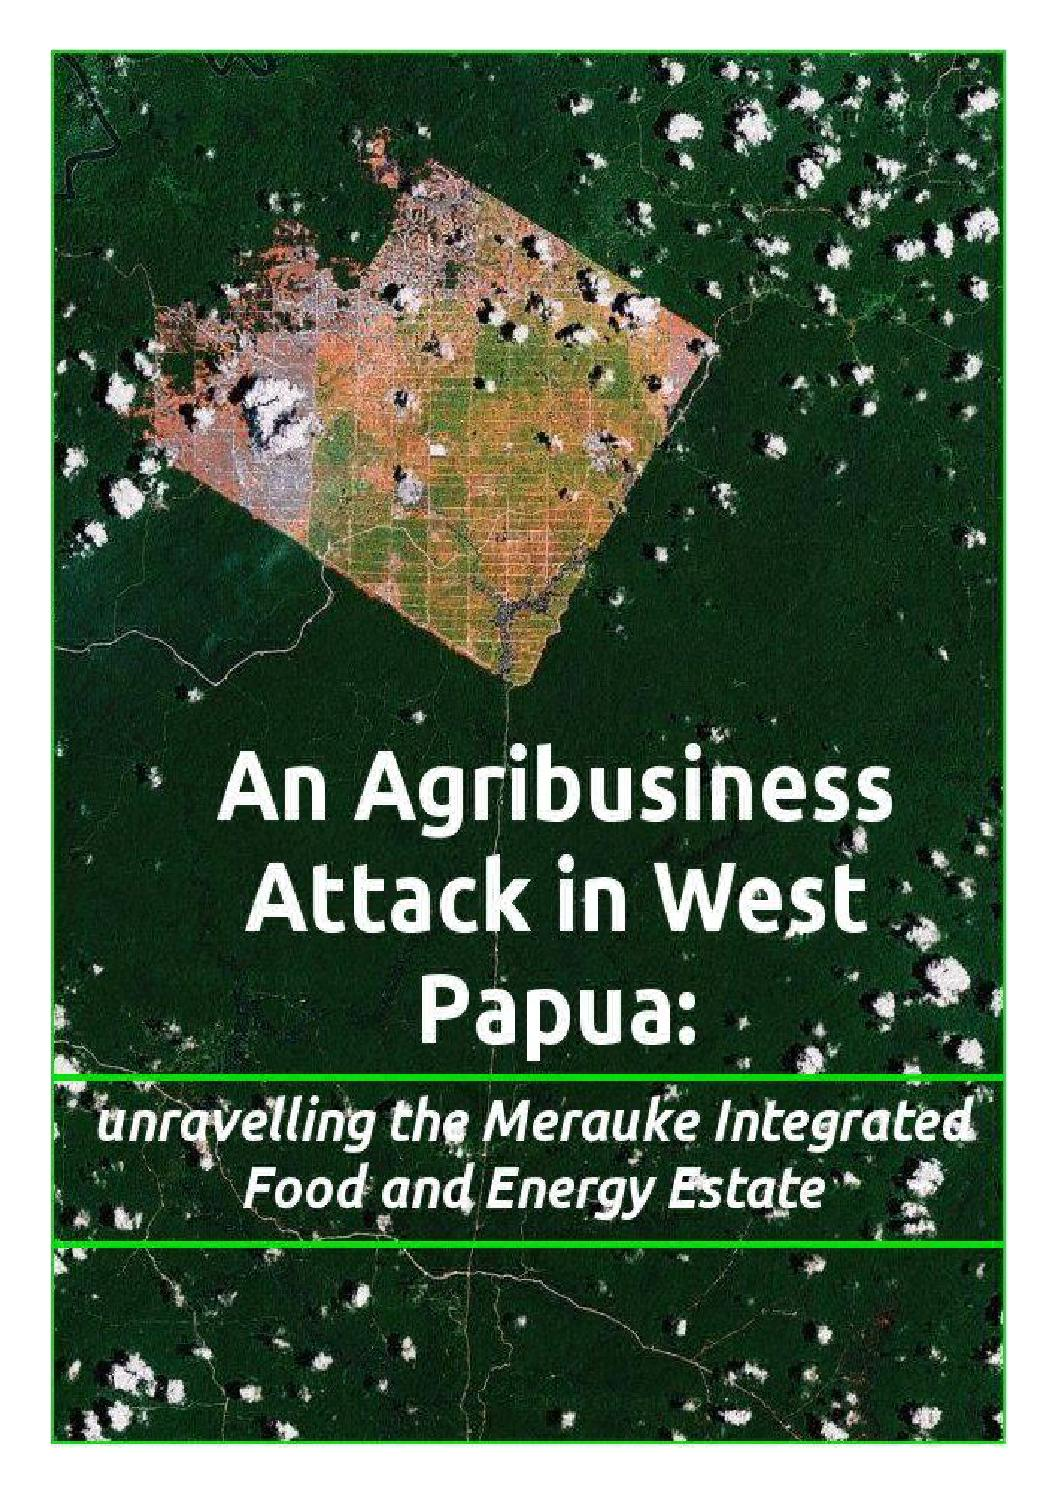 an agribusiness attack in west papua by residensil galih andreanto issuu an agribusiness attack in west papua by